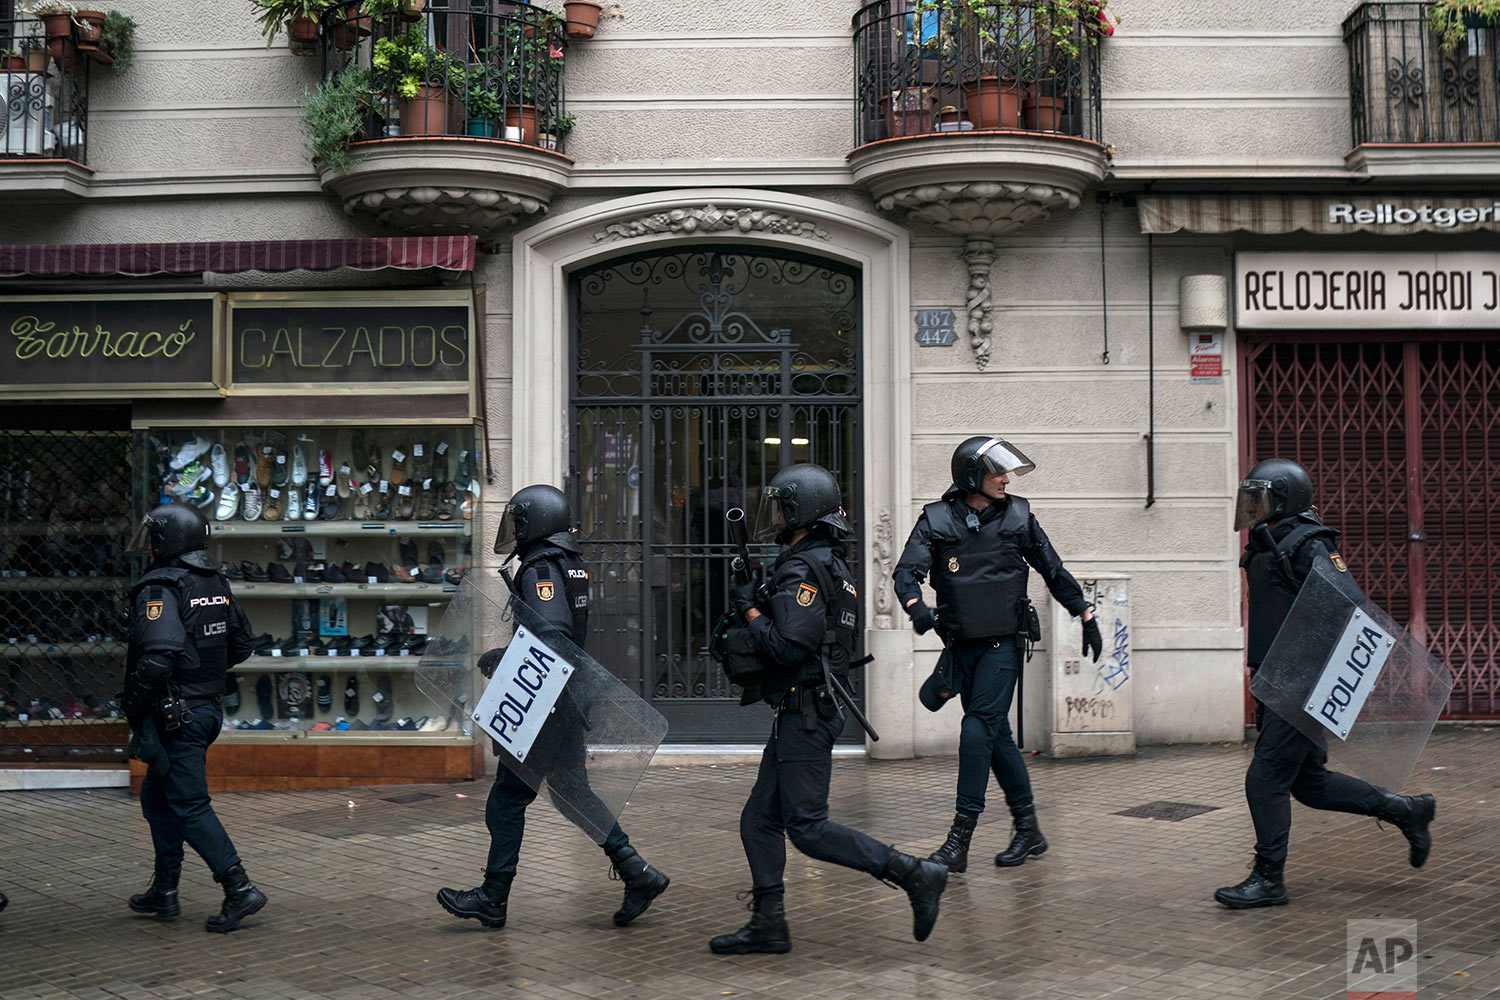 Spanish riot police takes position near a voting site at a school assigned to be a polling station by the Catalan government in Barcelona, Spain, Sunday, Oct. 1, 2017. Spanish riot police have forcefully removed and clashed with would-be voters in several polling stations in Barcelona.(AP Photo/Felipe Dana)